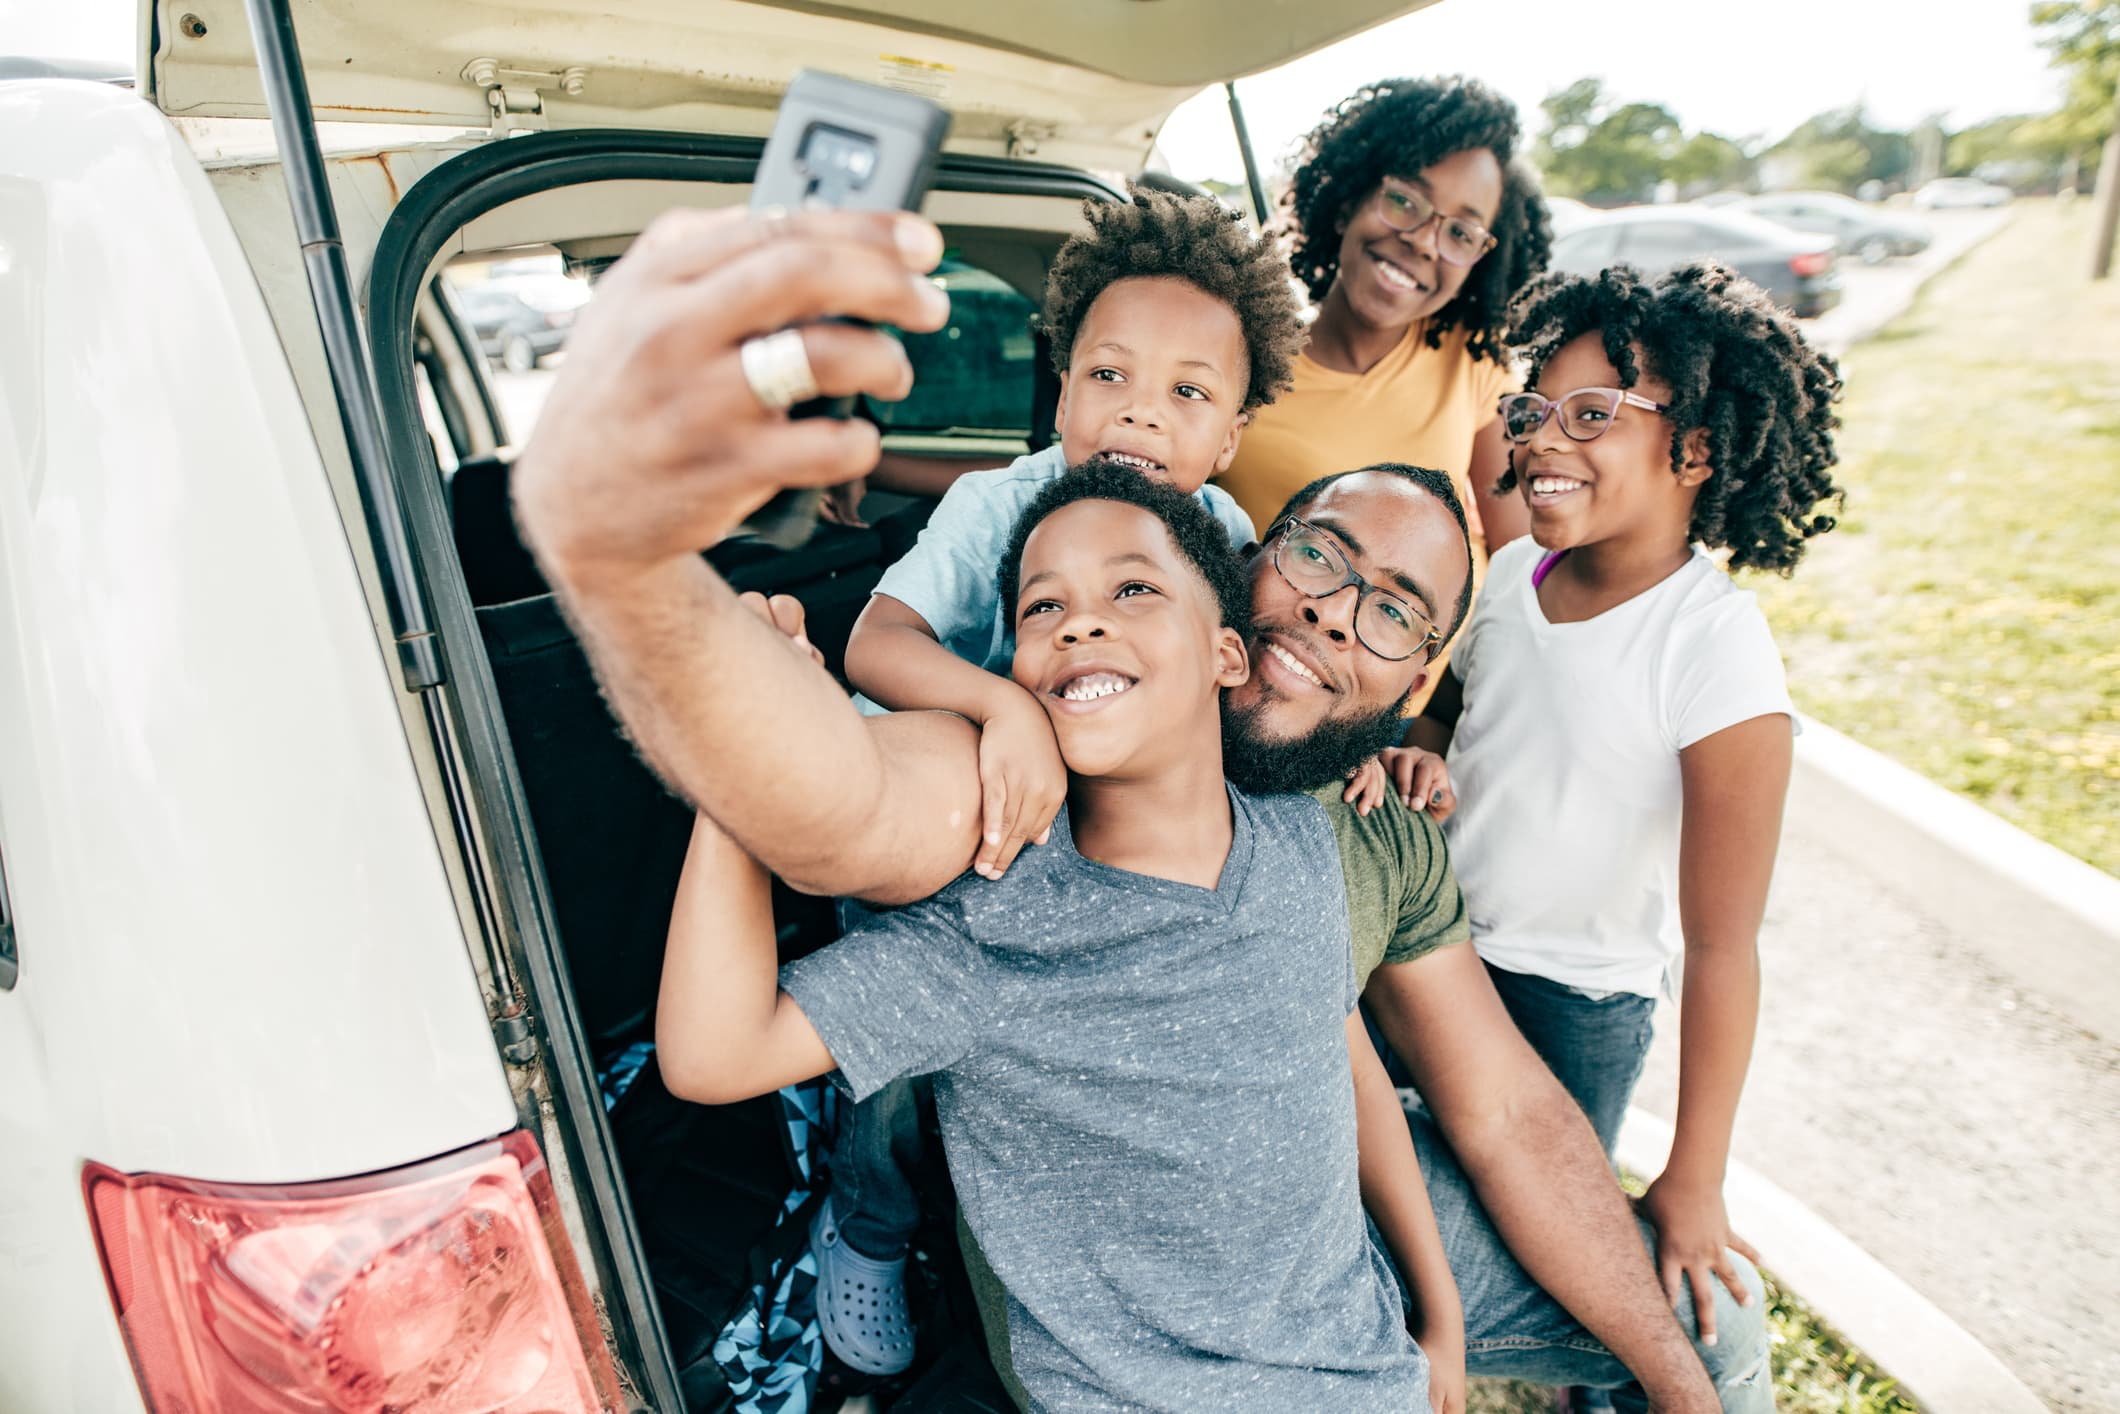 If you miss travel, road trips could be your key to safer summer getaways